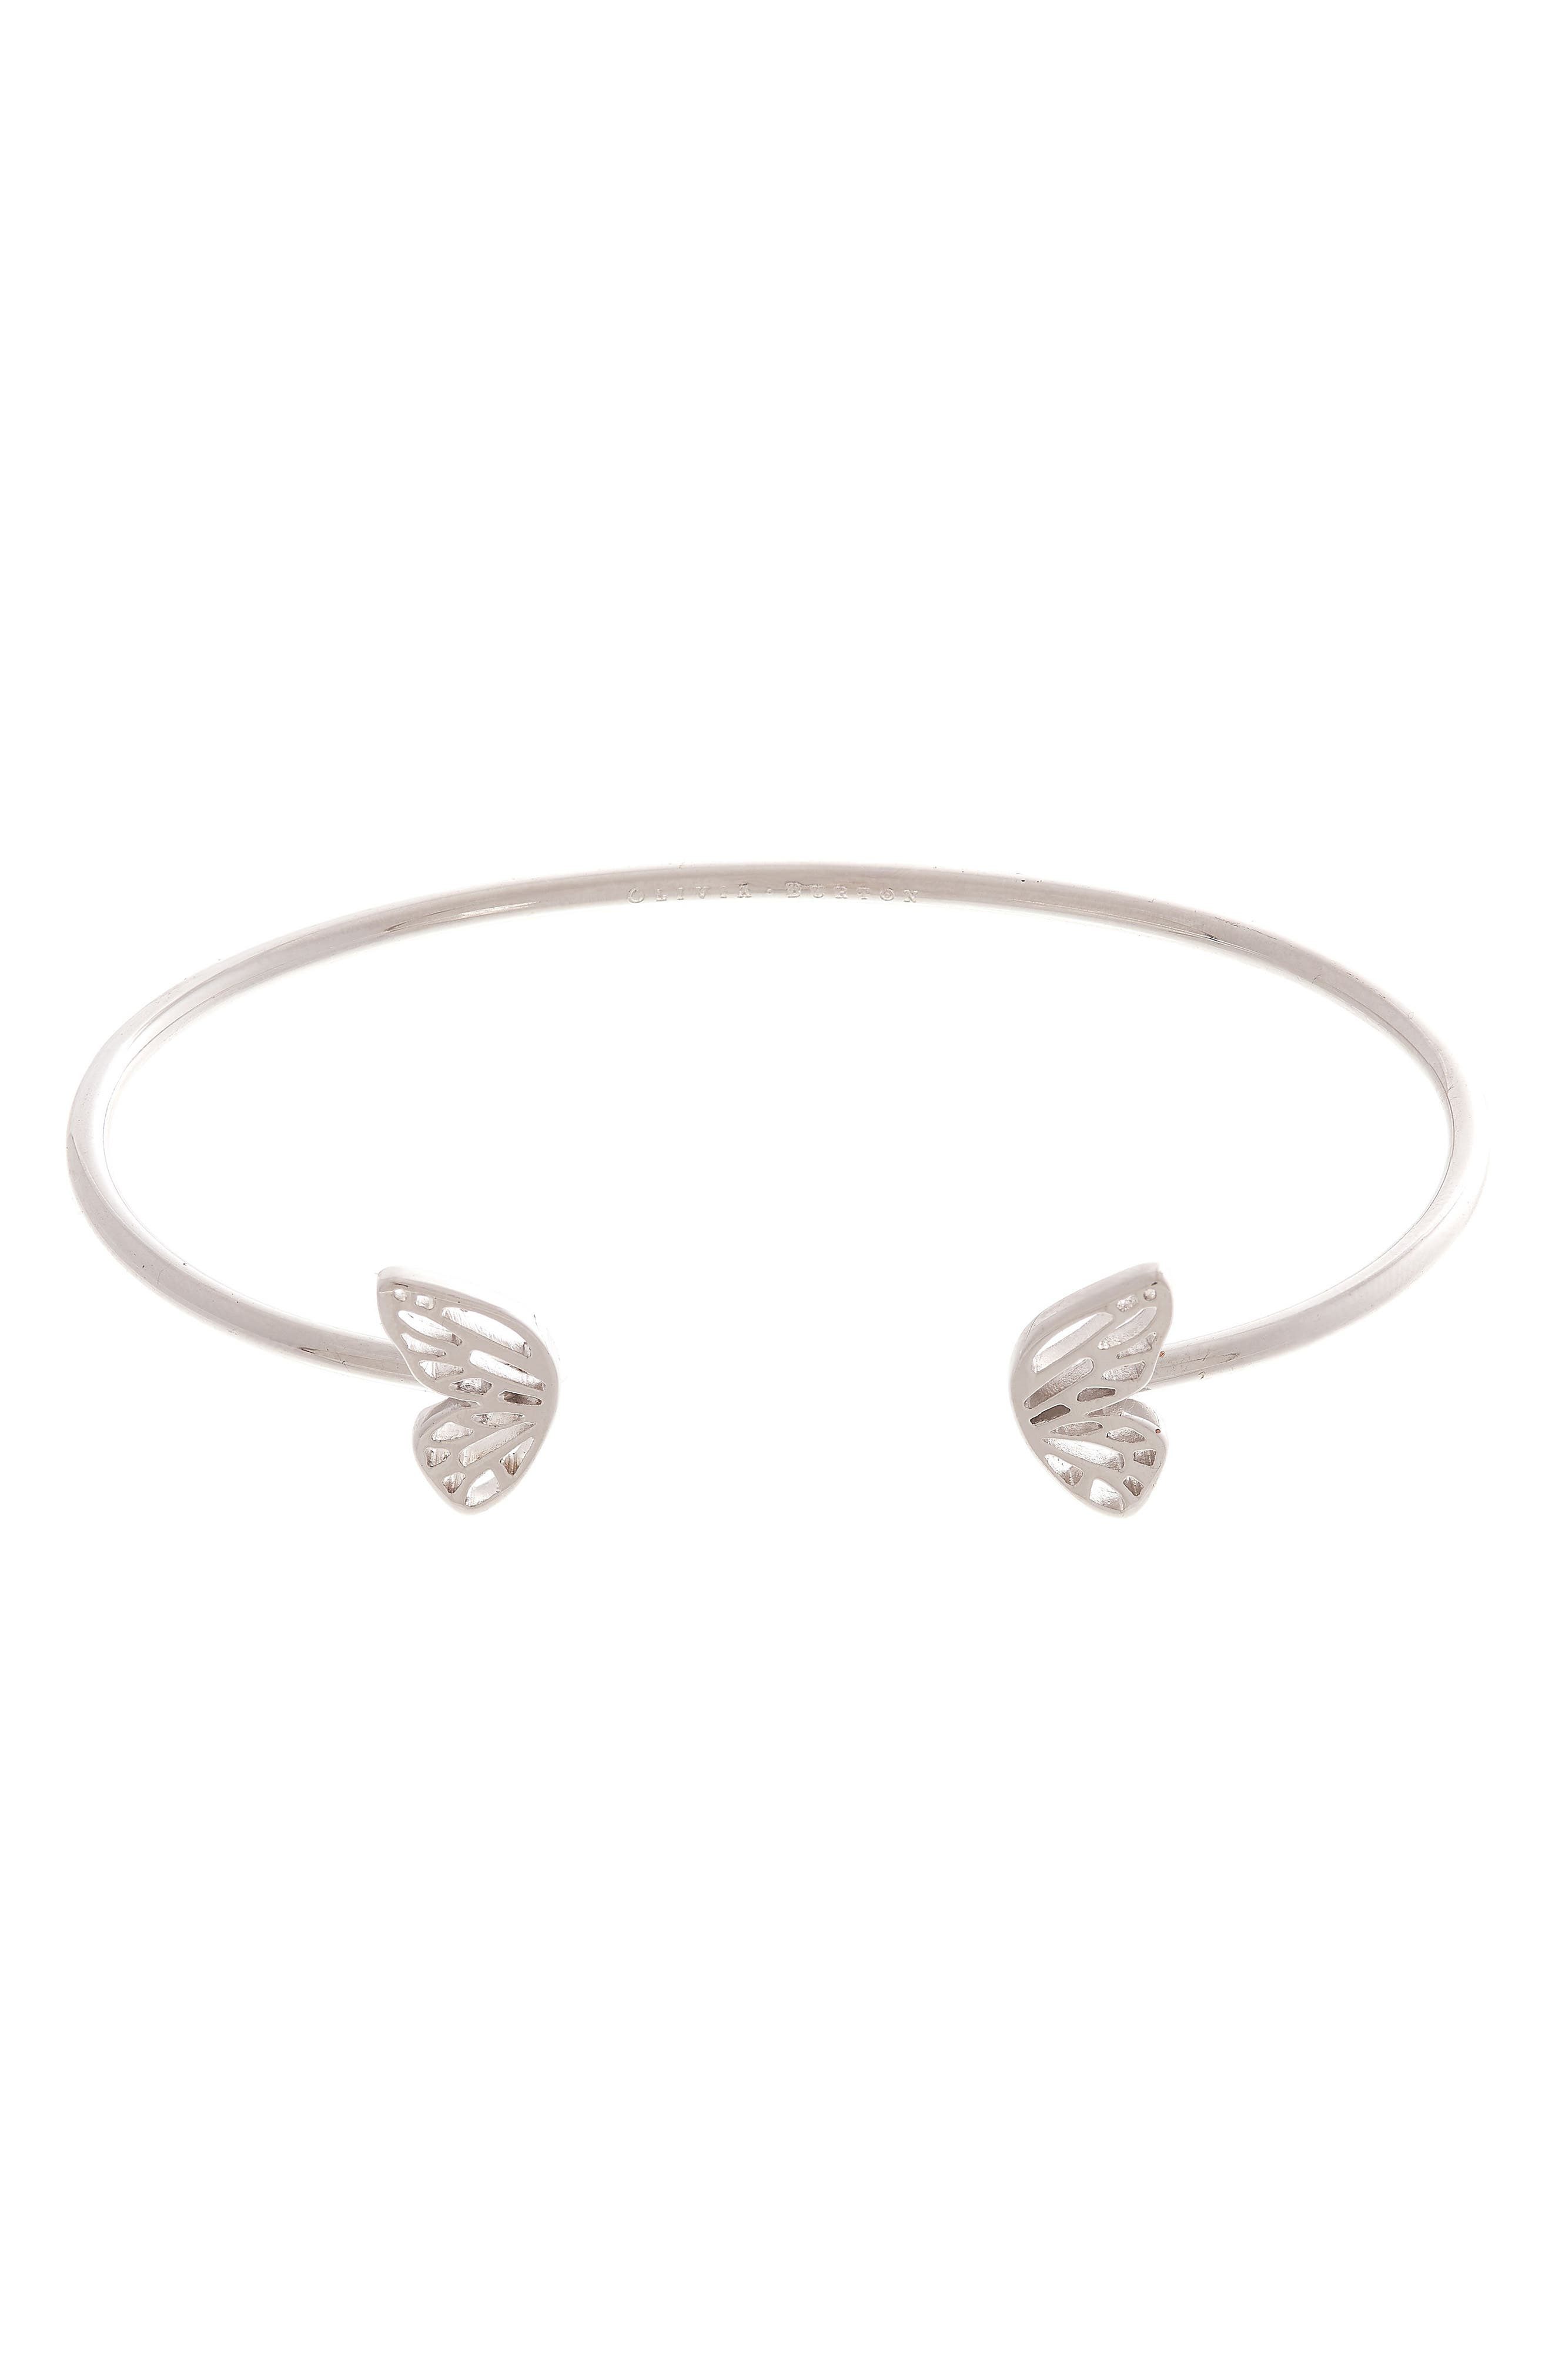 Butterfly Wing Open Bangle Bracelet,                         Main,                         color, SILVER